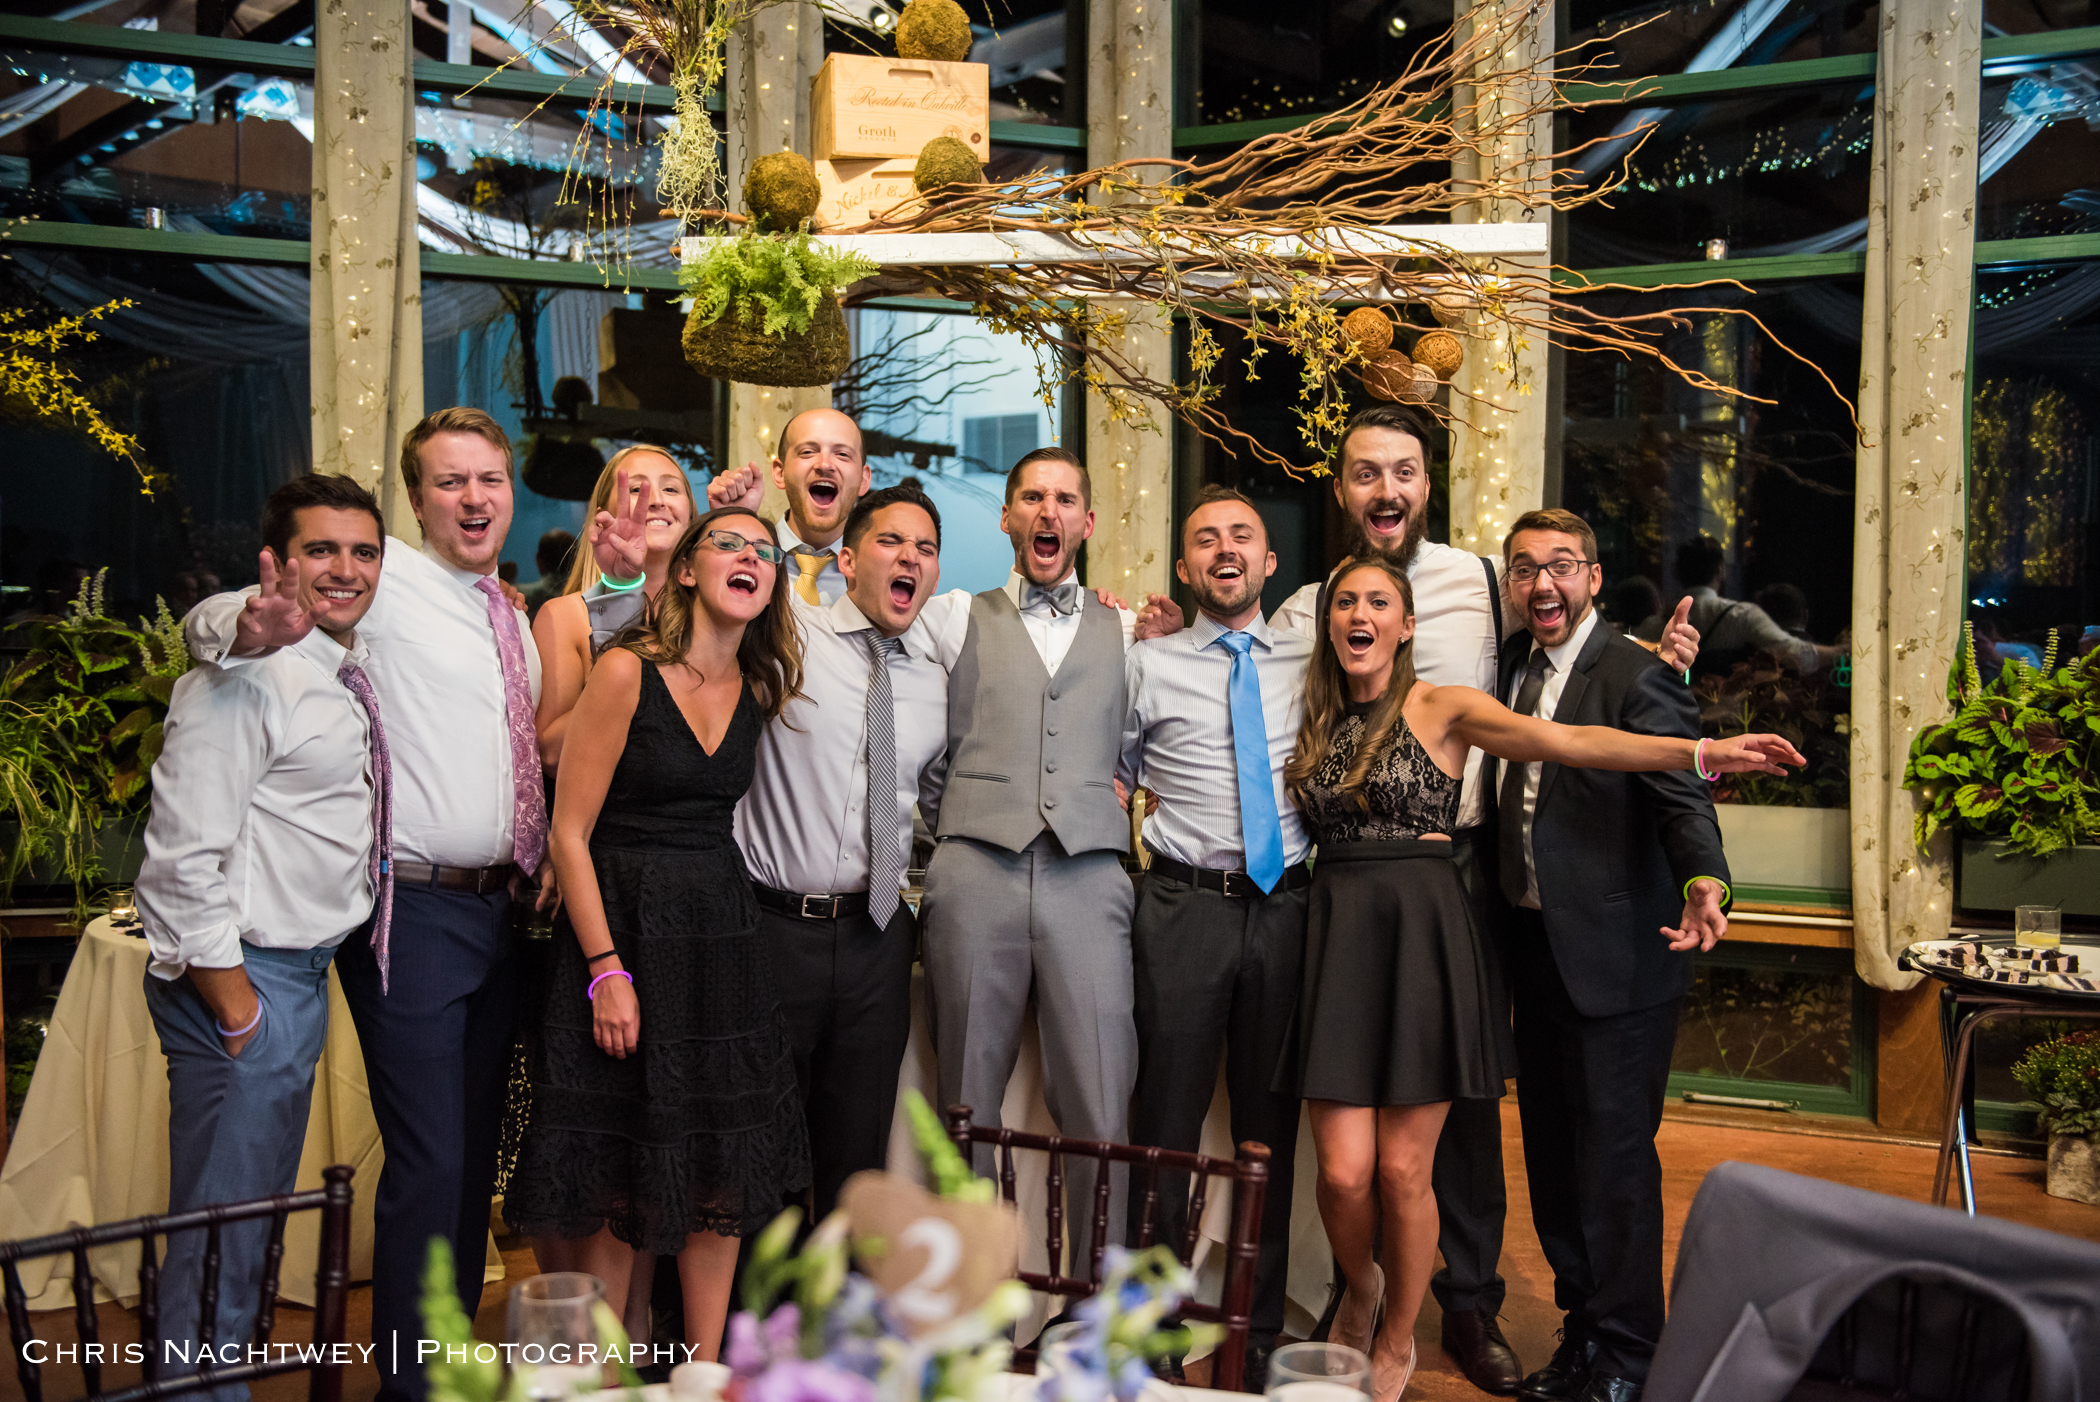 pond-house-cafe-wedding-hartford-ct-photos-chris-nachtwey-photography-2017-jackie-matt-48.jpg